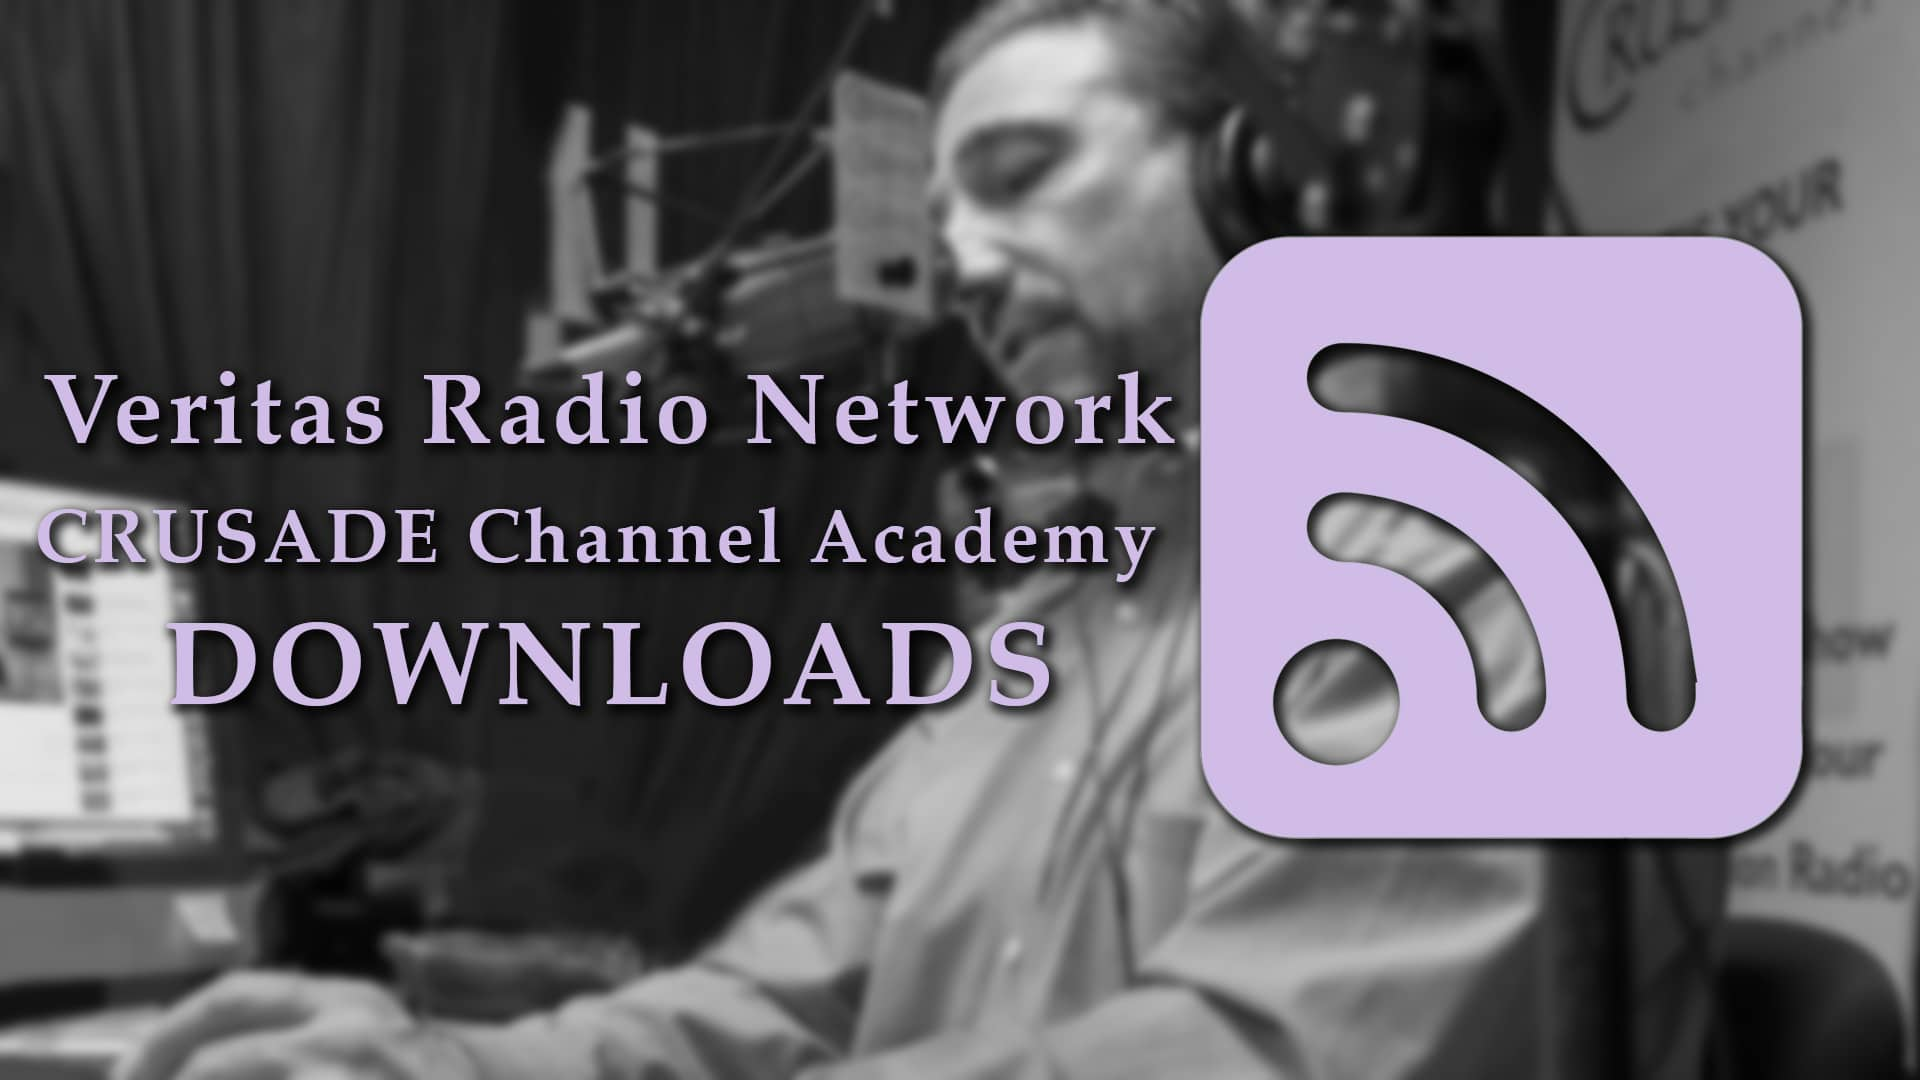 Veritas Academy: How To Listen To Veritas Radio Network Using your Own WiFi Hotspot!